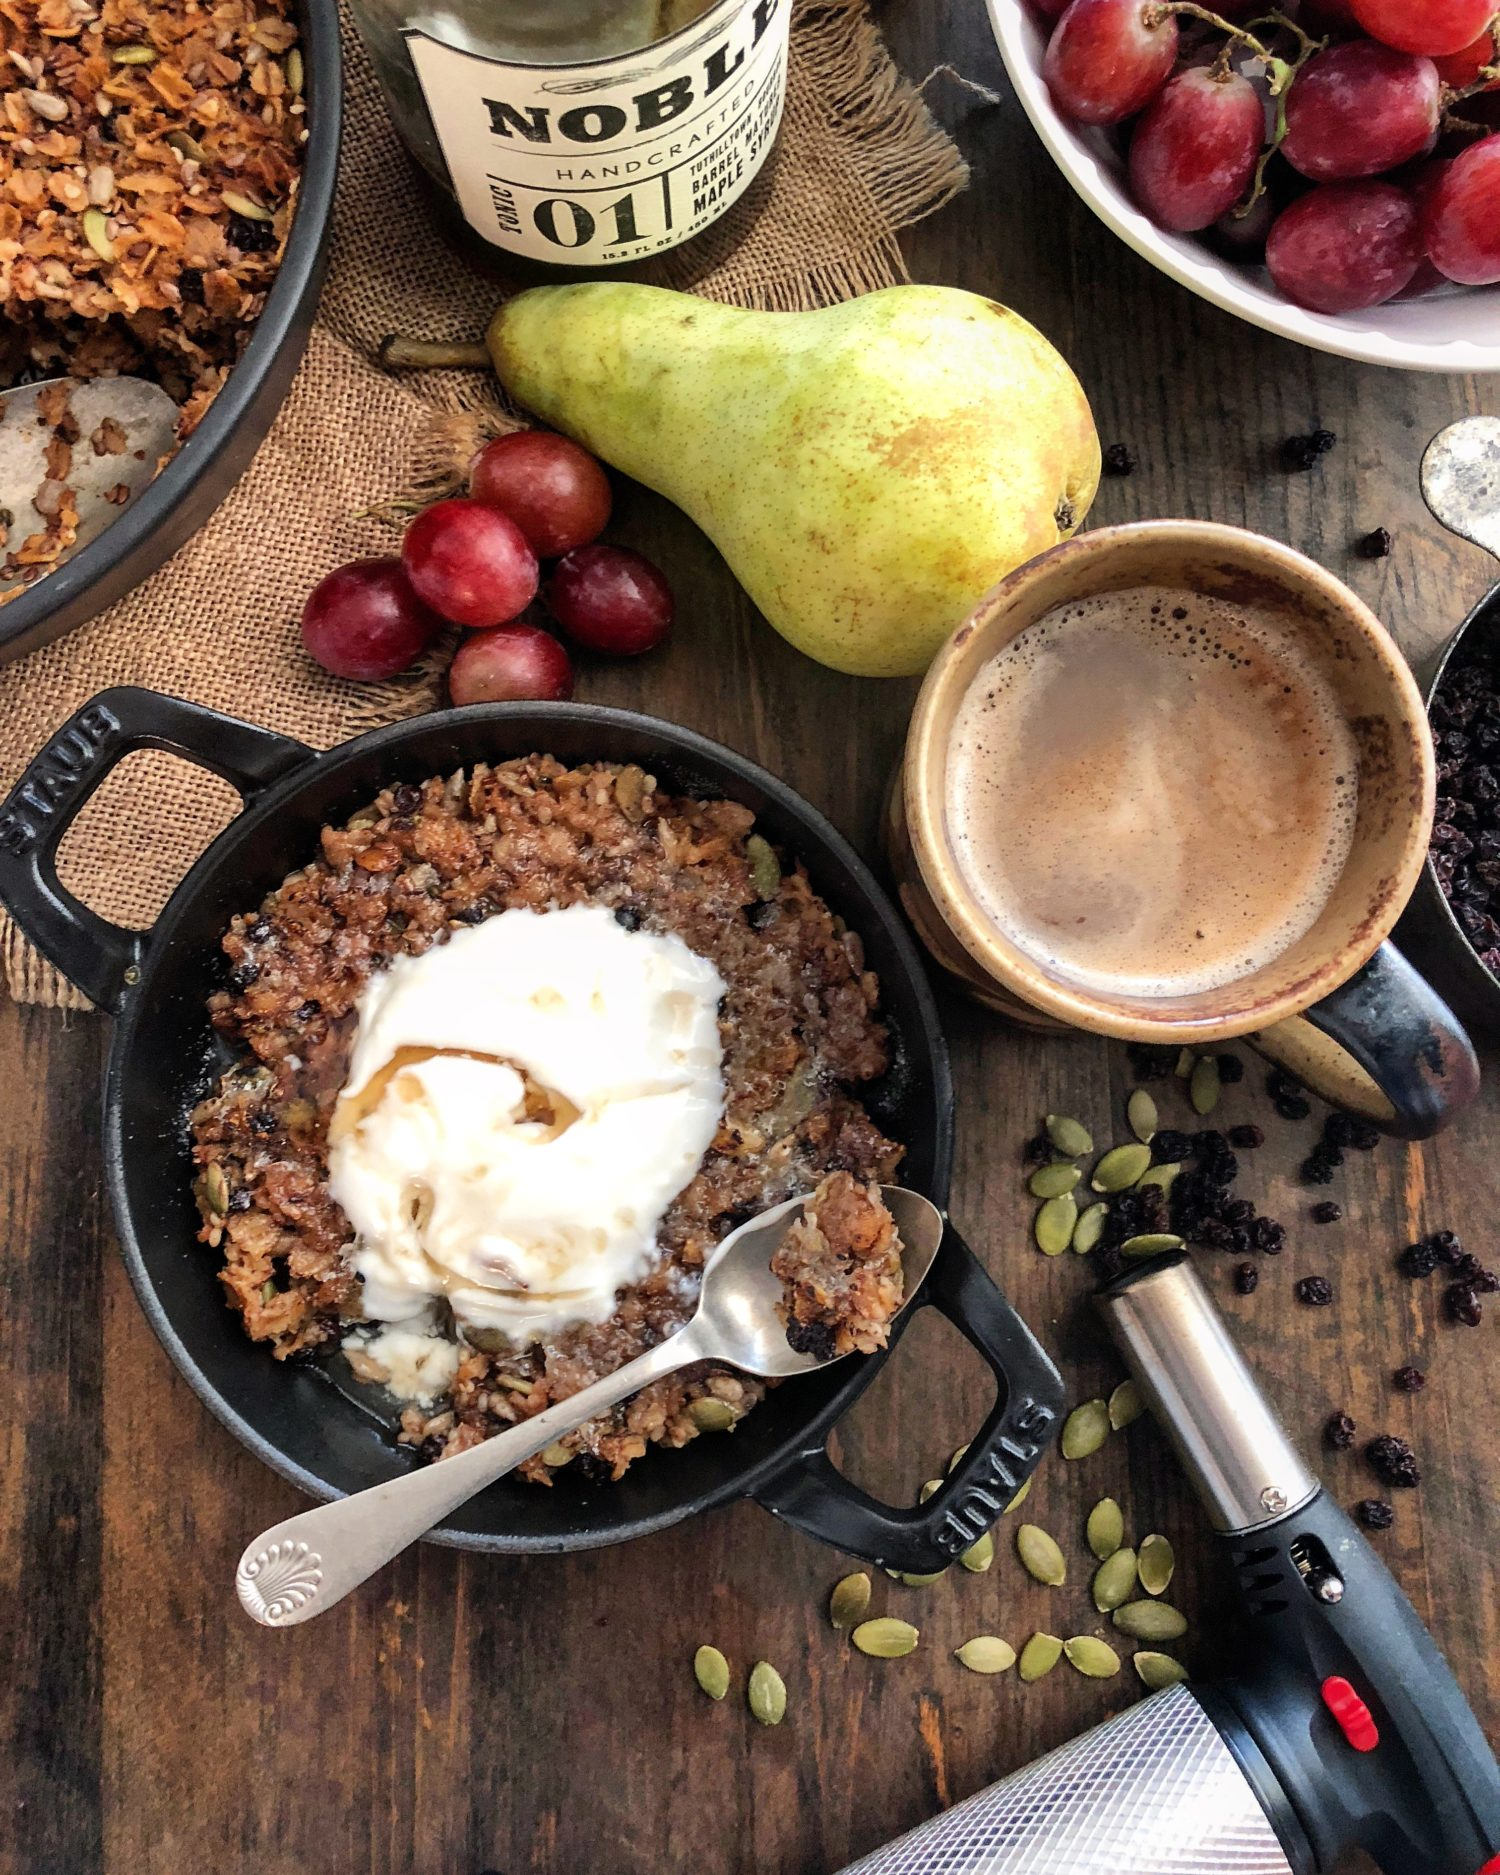 Toasted nutty seed and dried currant baked oatmeal brûlée